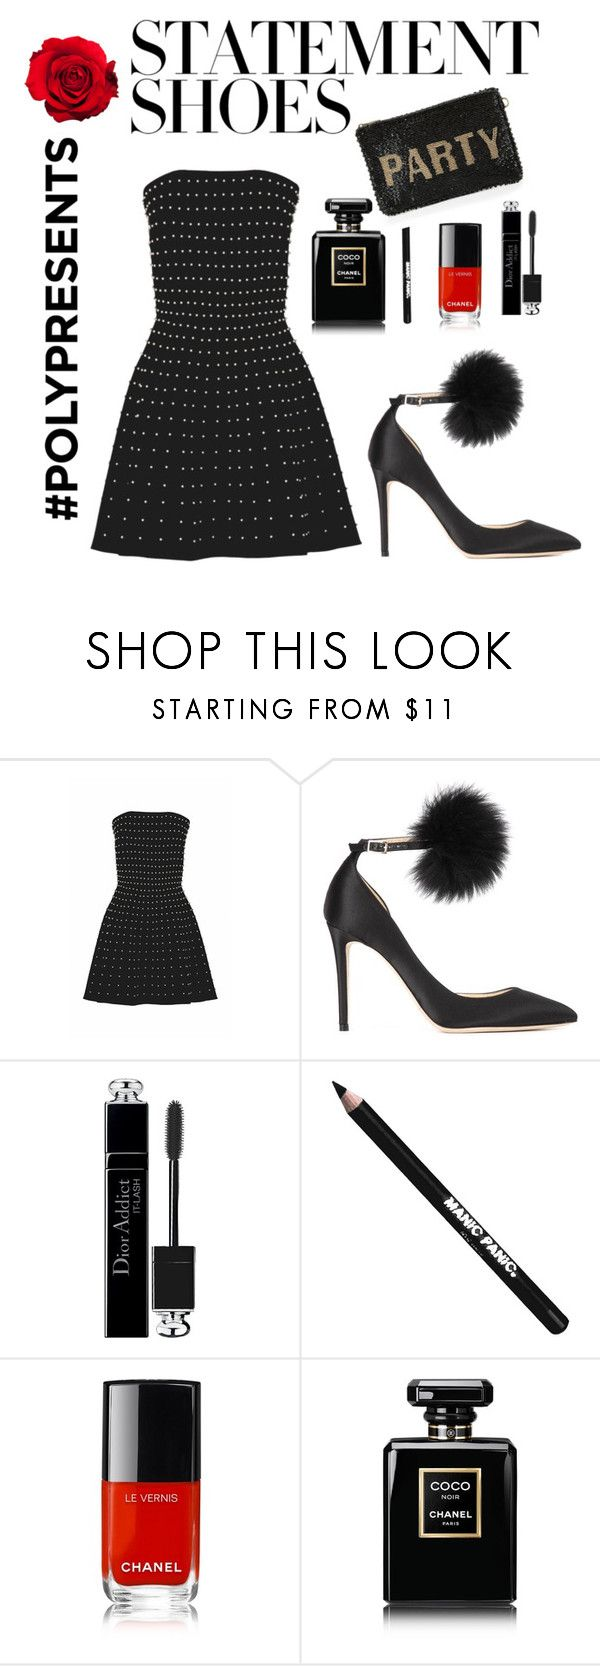 """Wow! Statement Shoes"" by sahaja123 ❤ liked on Polyvore featuring Esme Vie, Jimmy Choo, Christian Dior, Manic Panic NYC, Chanel and Mary Frances Accessories"